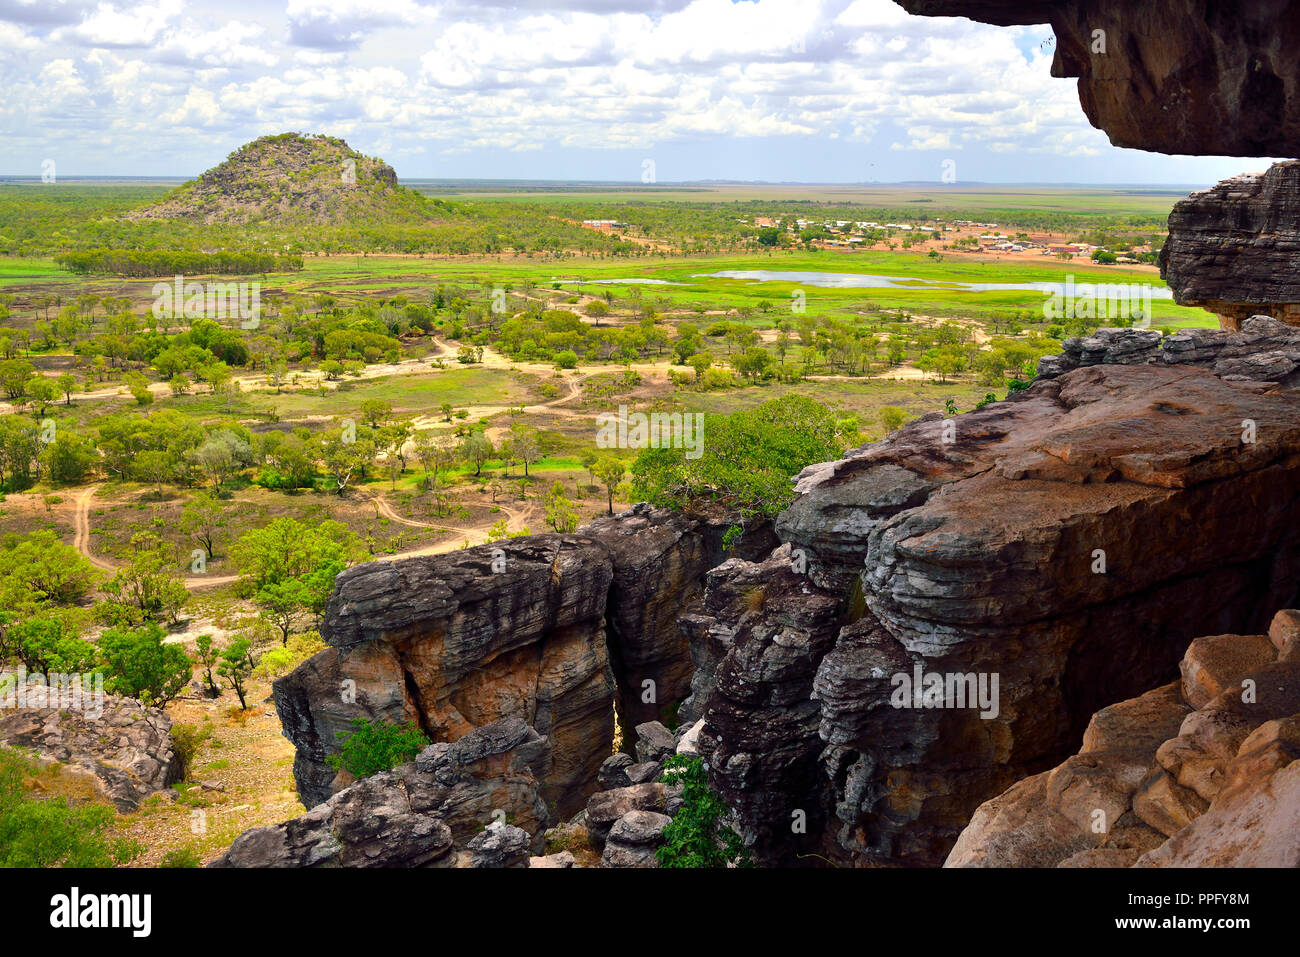 View from Anjalak Hill over the huge landscape and wetlands  of Arnhem Land, Northern Territory, Australia Stock Photo